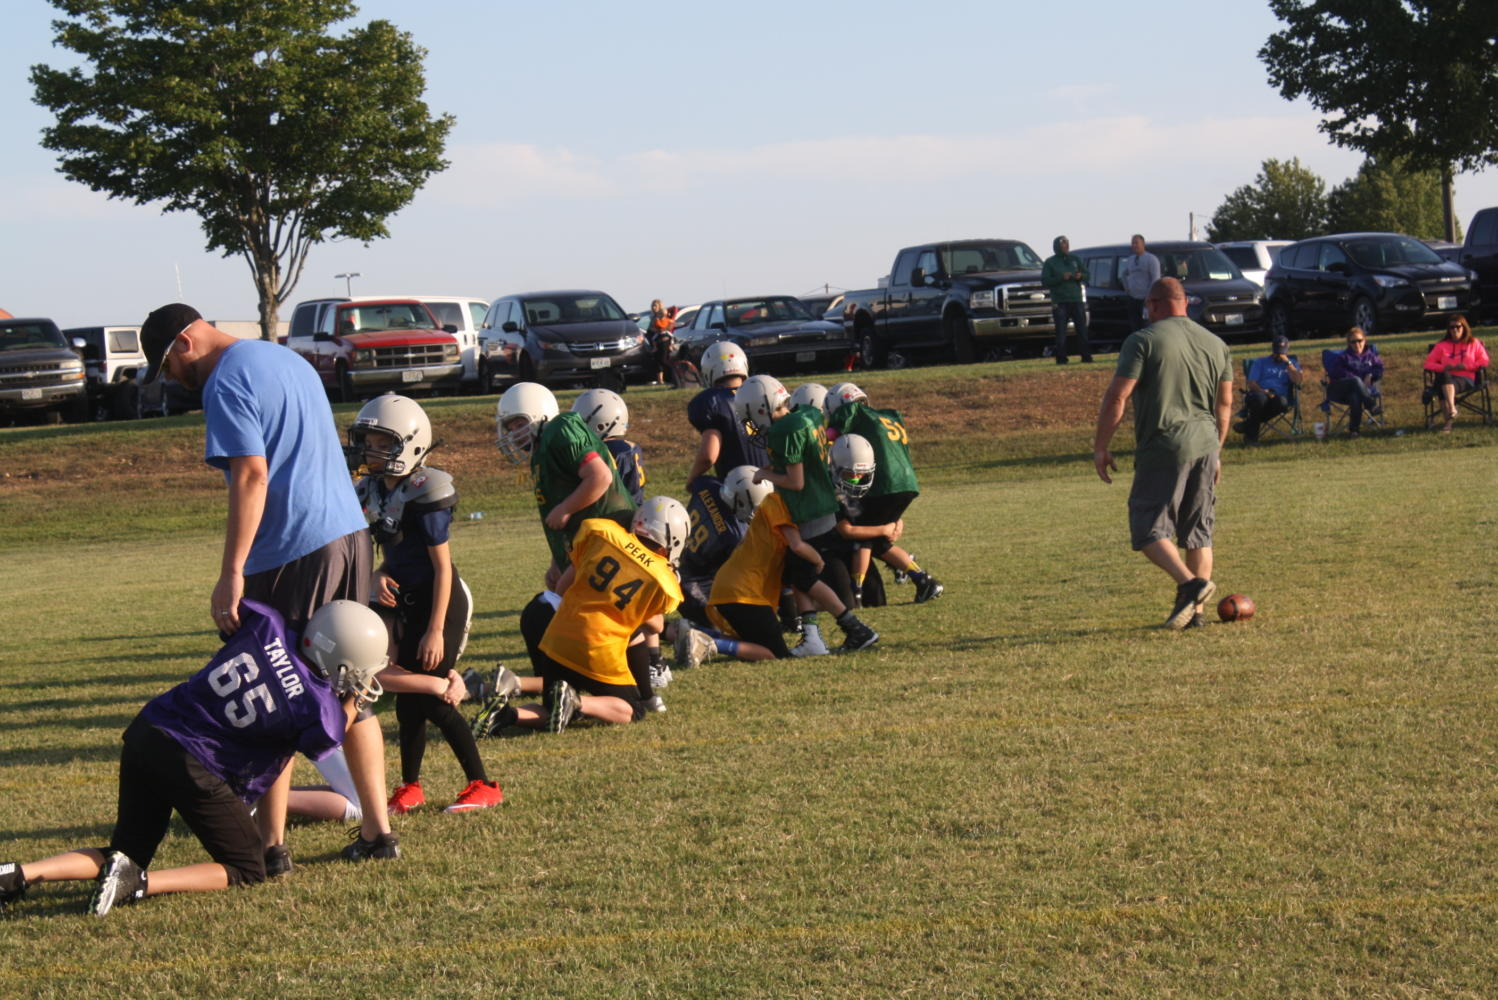 Mighty Mites practices for the first time this year